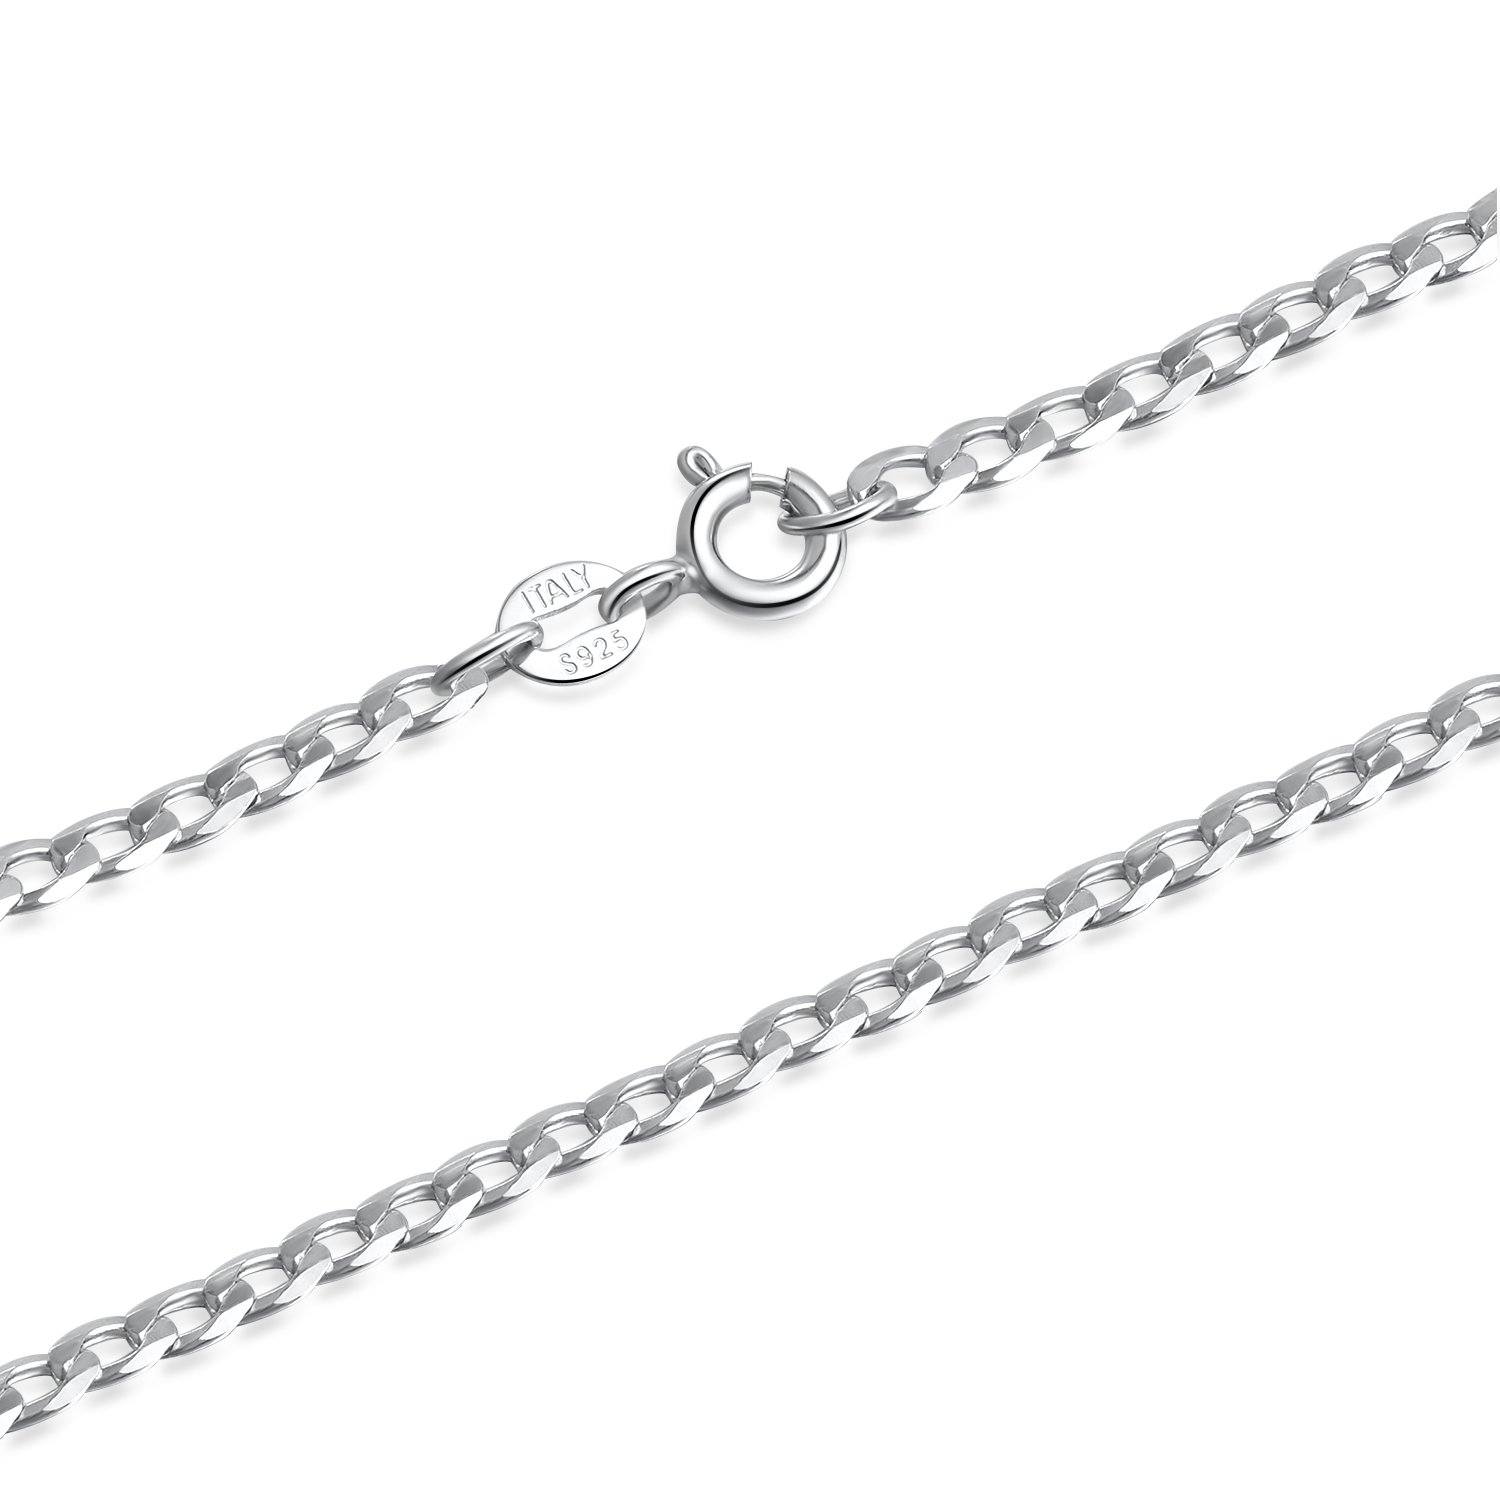 SILBERTALE 925 Sterling Silver Flat Curb Cuban Link Chain Necklace 16 18 20 inch for Women Men 2.0 3.0 4.0 mm